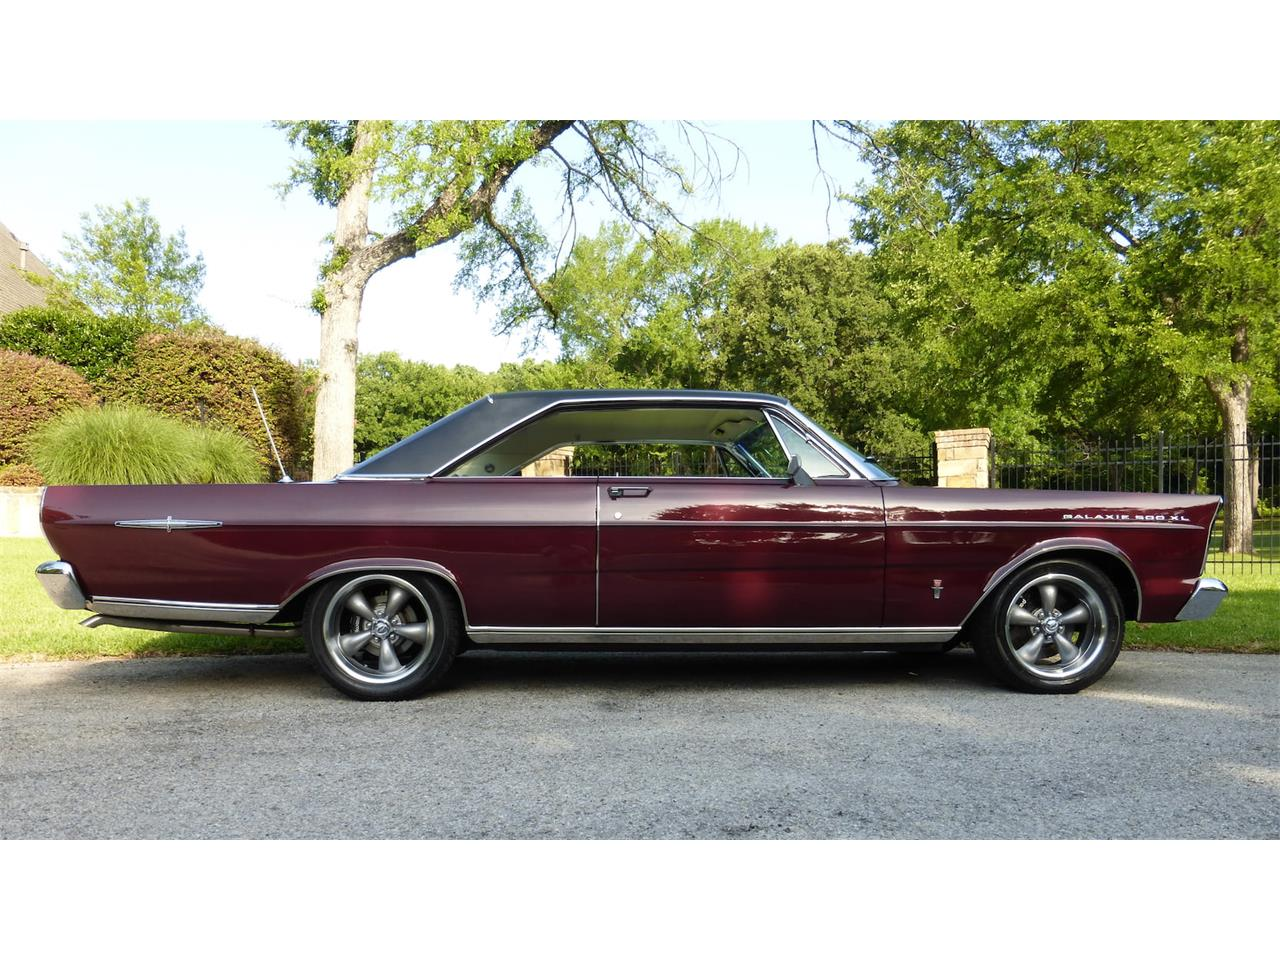 1965 Ford Galaxie 500 XL (CC-1361221) for sale in LIBERTY HILL, Texas